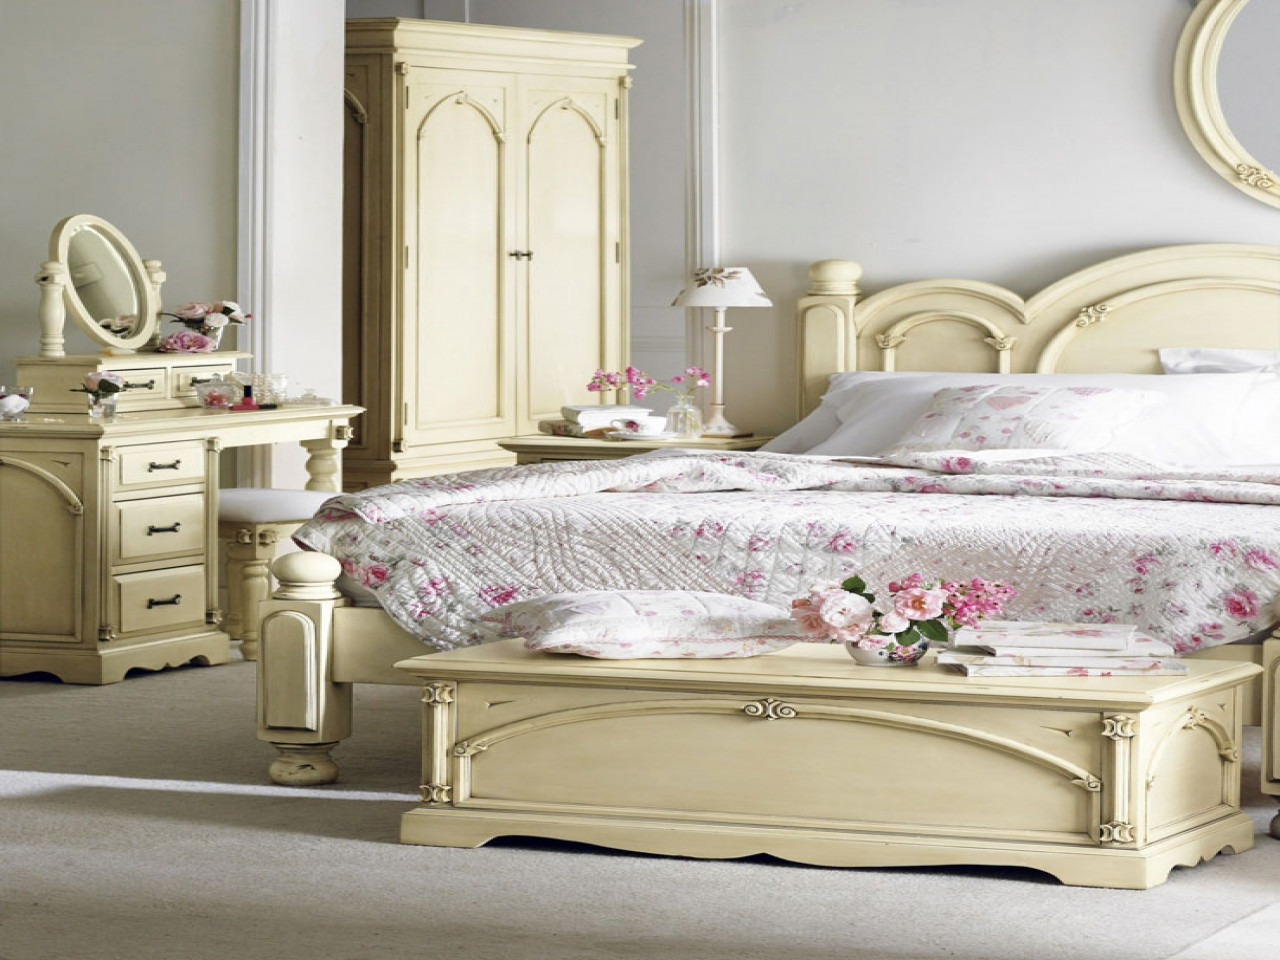 Best ideas about Shabby Chic Furniture Ideas . Save or Pin Chic bedrooms shabby chic painted furniture ideas shabby Now.